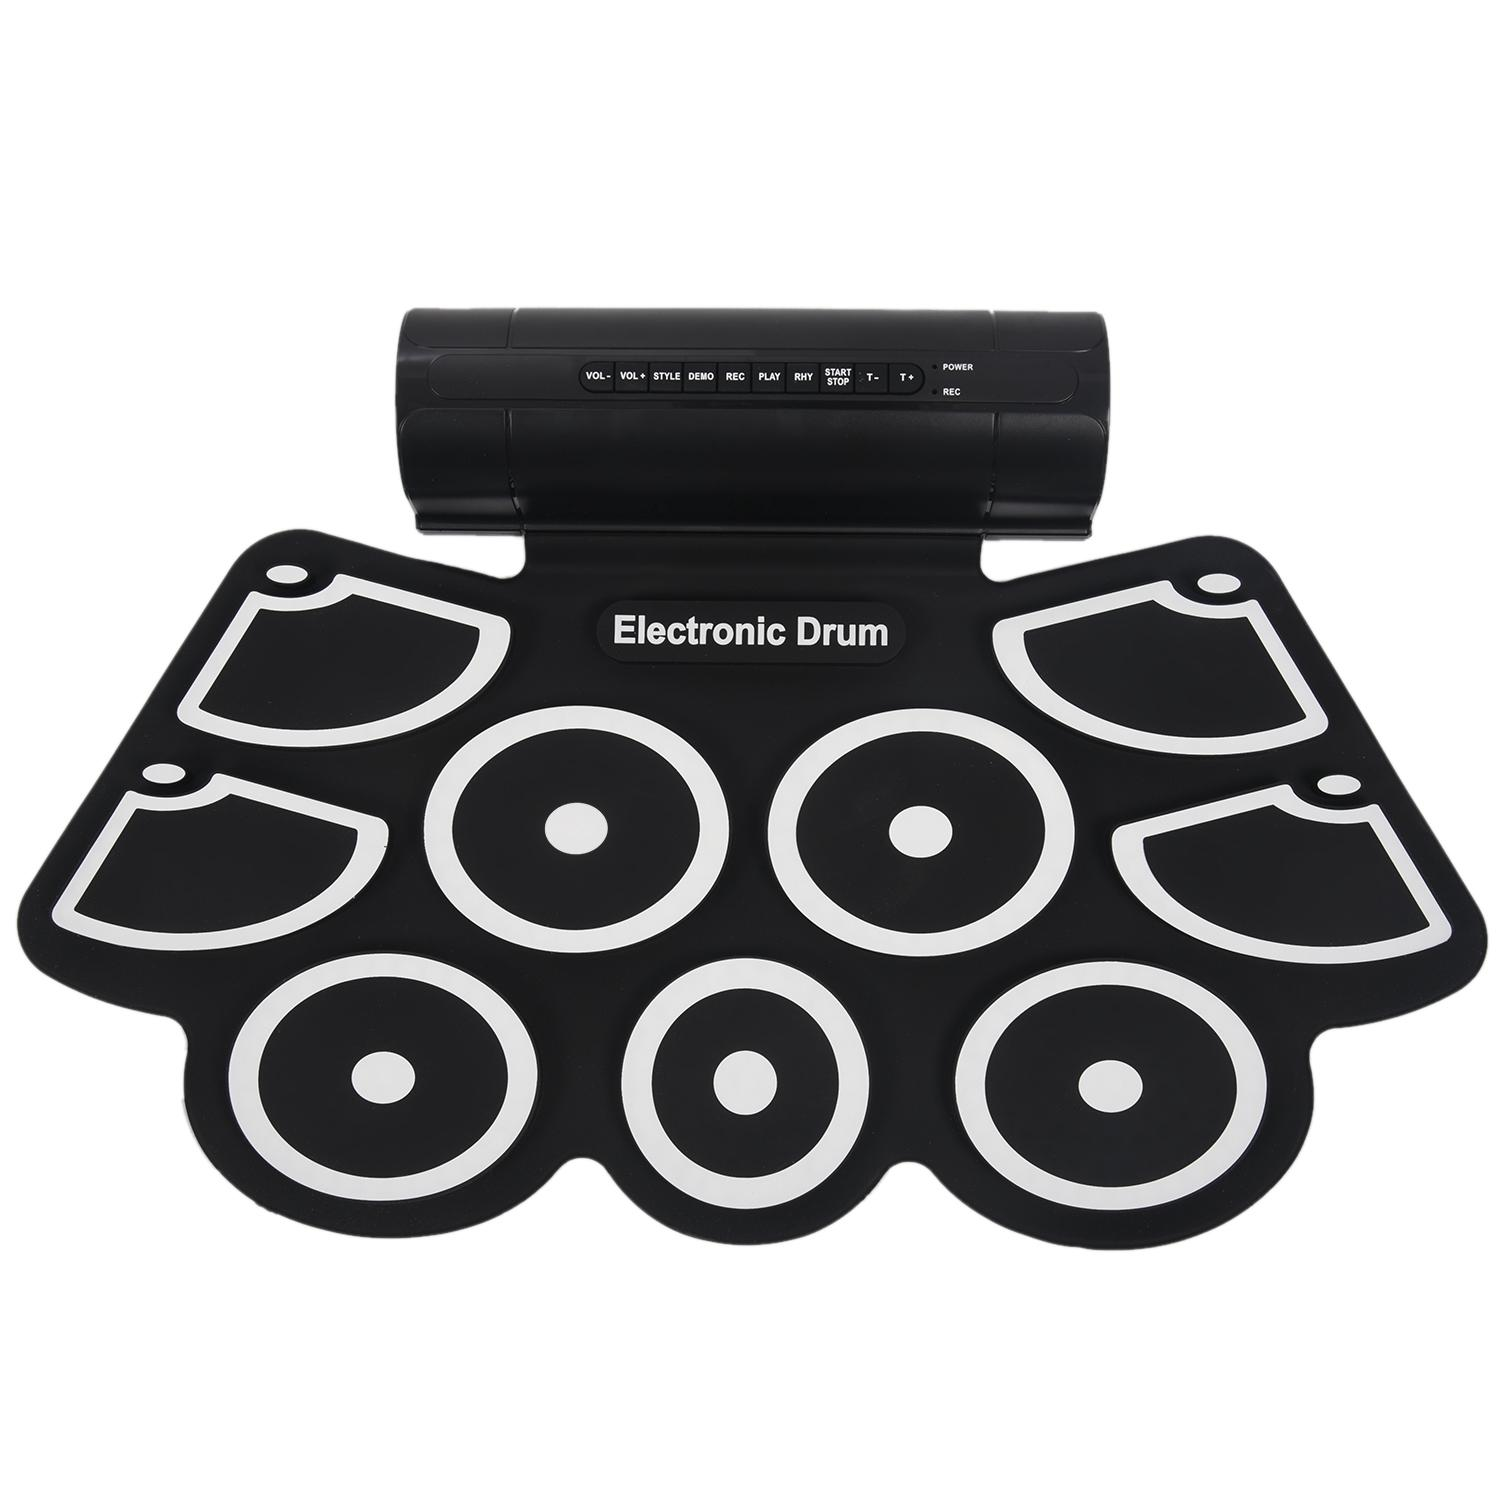 Portable Roll up Electronic USB MIDI Drum Set Kits 9 Pads Built in Speakers Foot Pedals